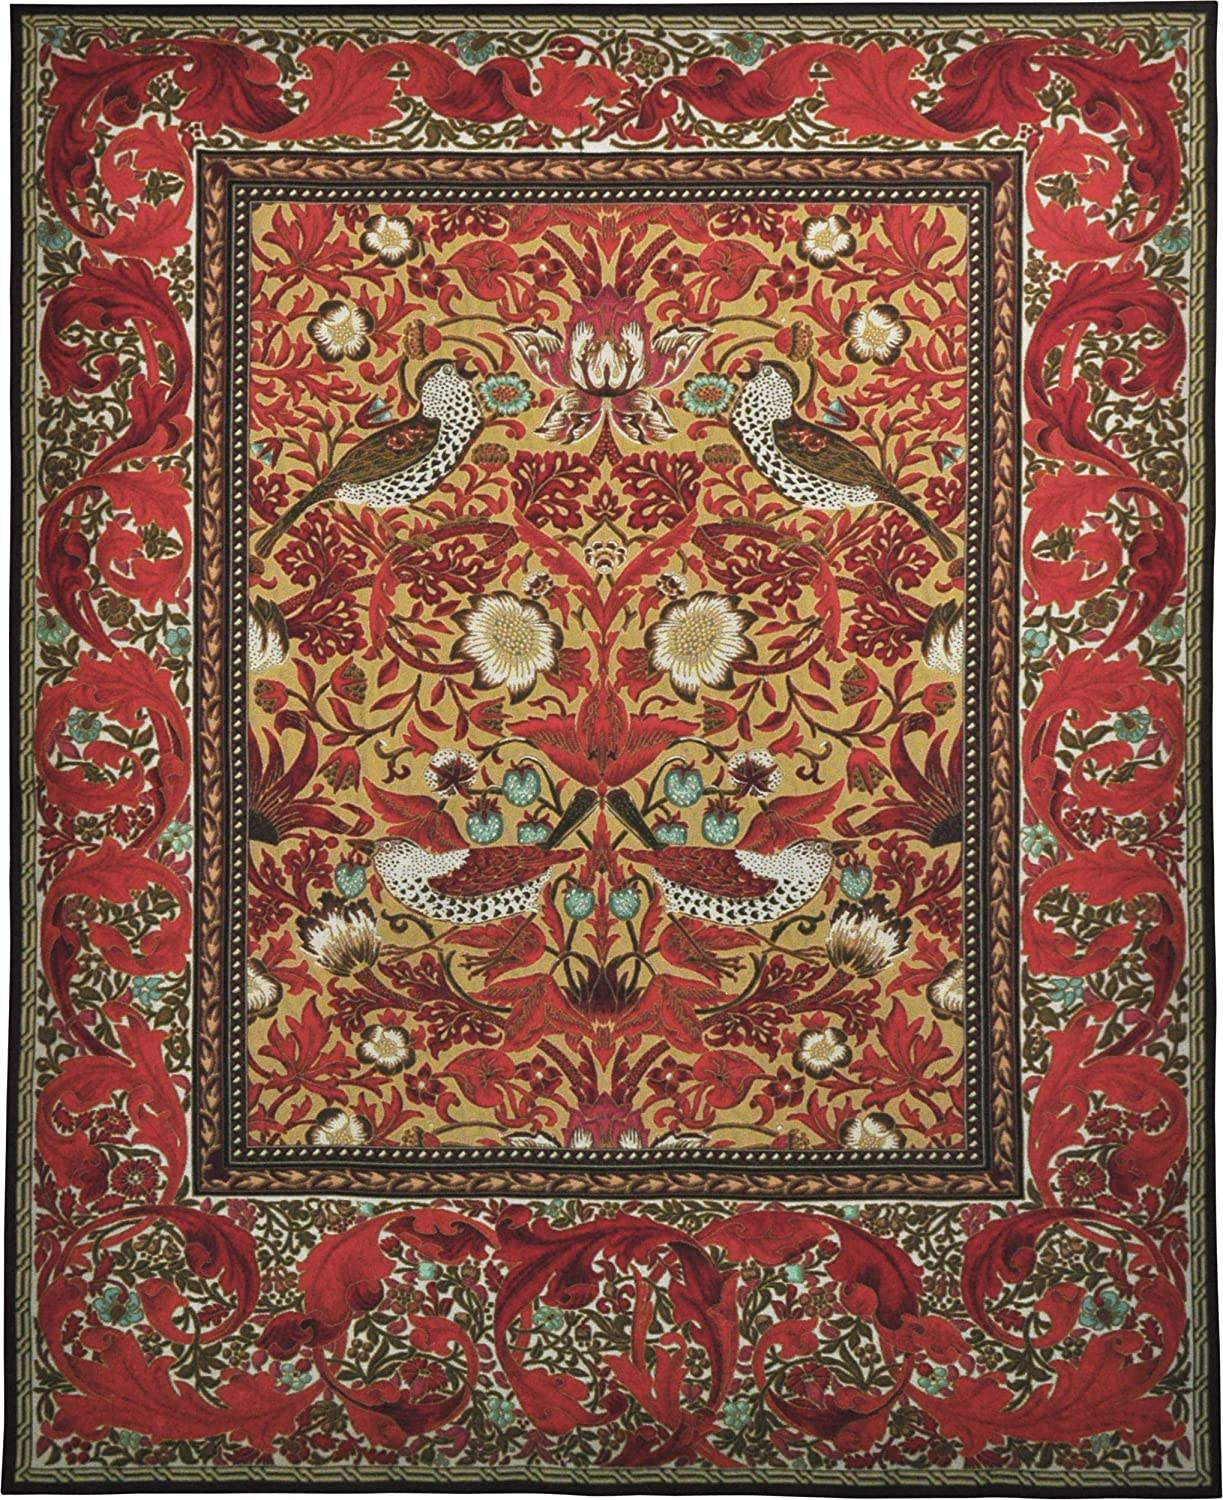 Strawberry Max 47% OFF Thief Red by William Wall Max 59% OFF Woven Tapestry Art Morris